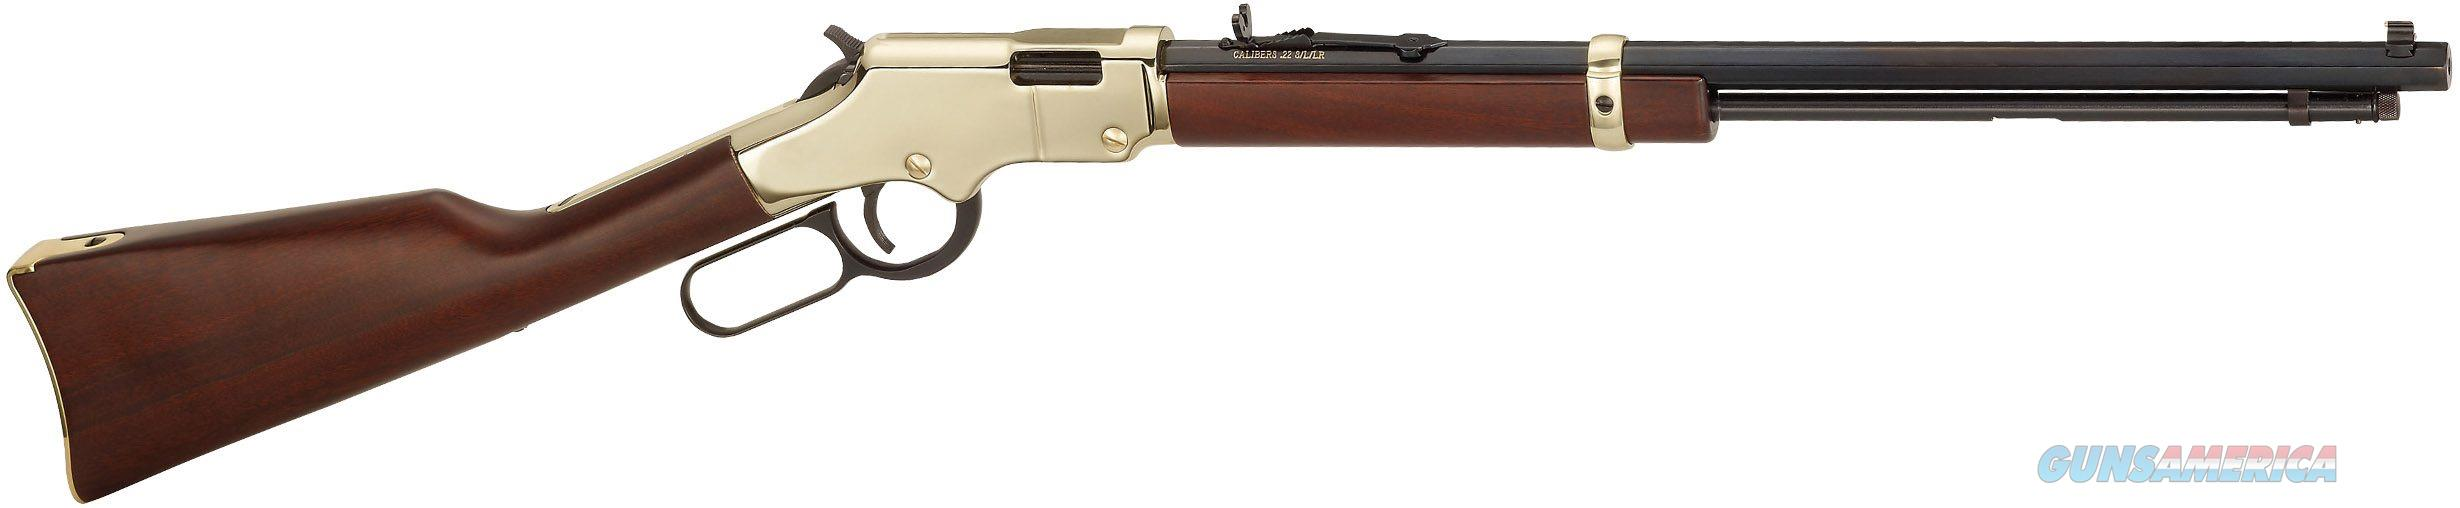 Henry H004 Golden Boy  Guns > Rifles > Henry Rifle Company